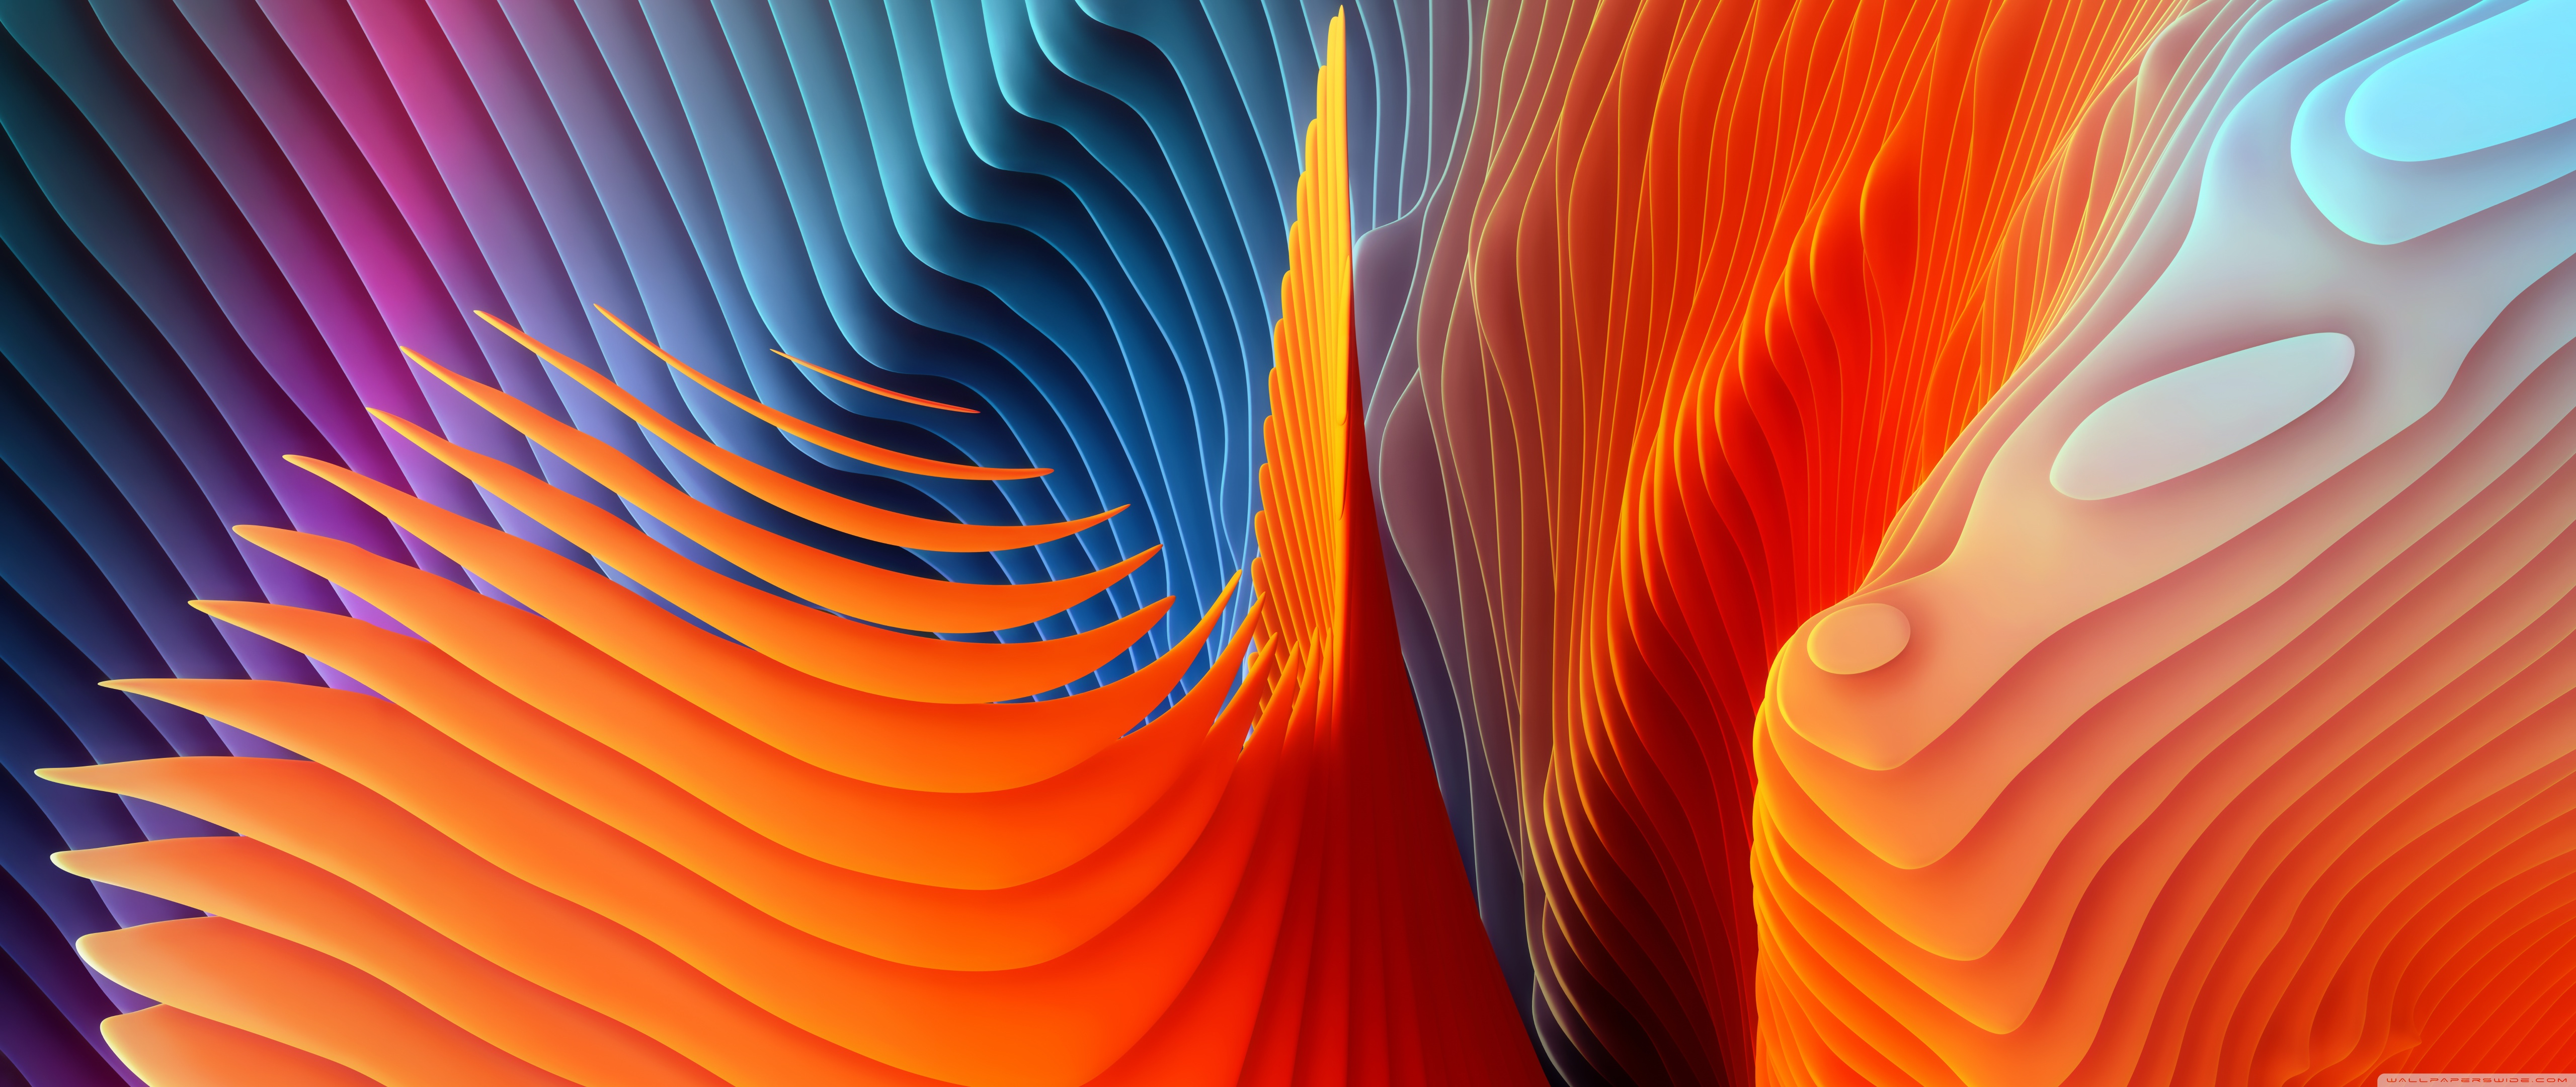 Colorful Abstract Waves 4K Wallpapers - Wallpaper Cave